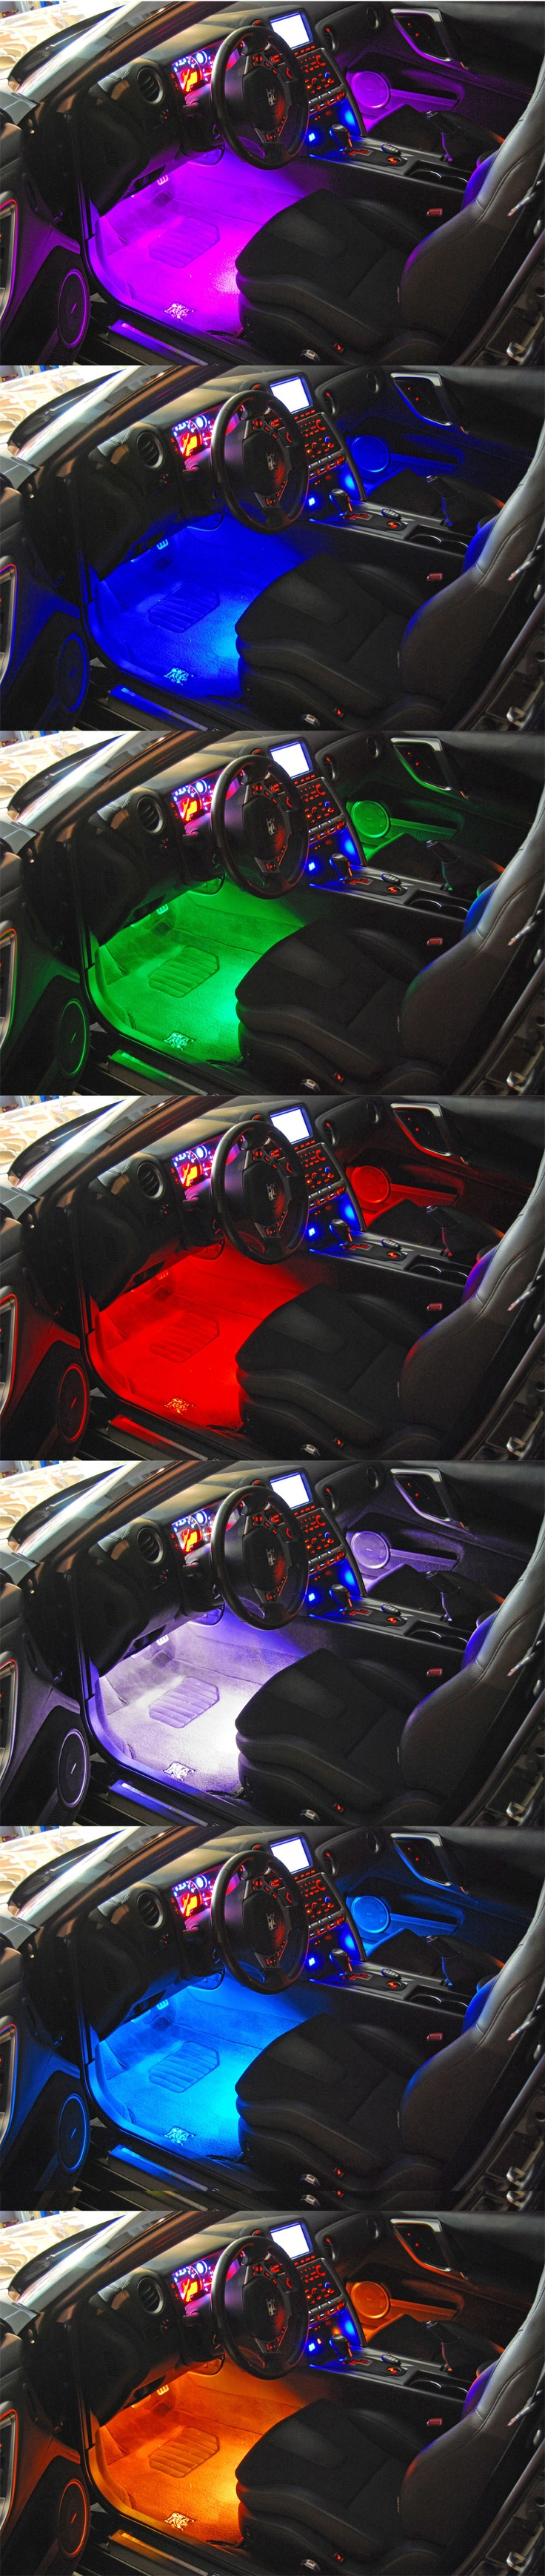 Nissan GTR Custom Interior LED Lighting by FlyRyde. RGB LEDs controlled wireless via Remote.